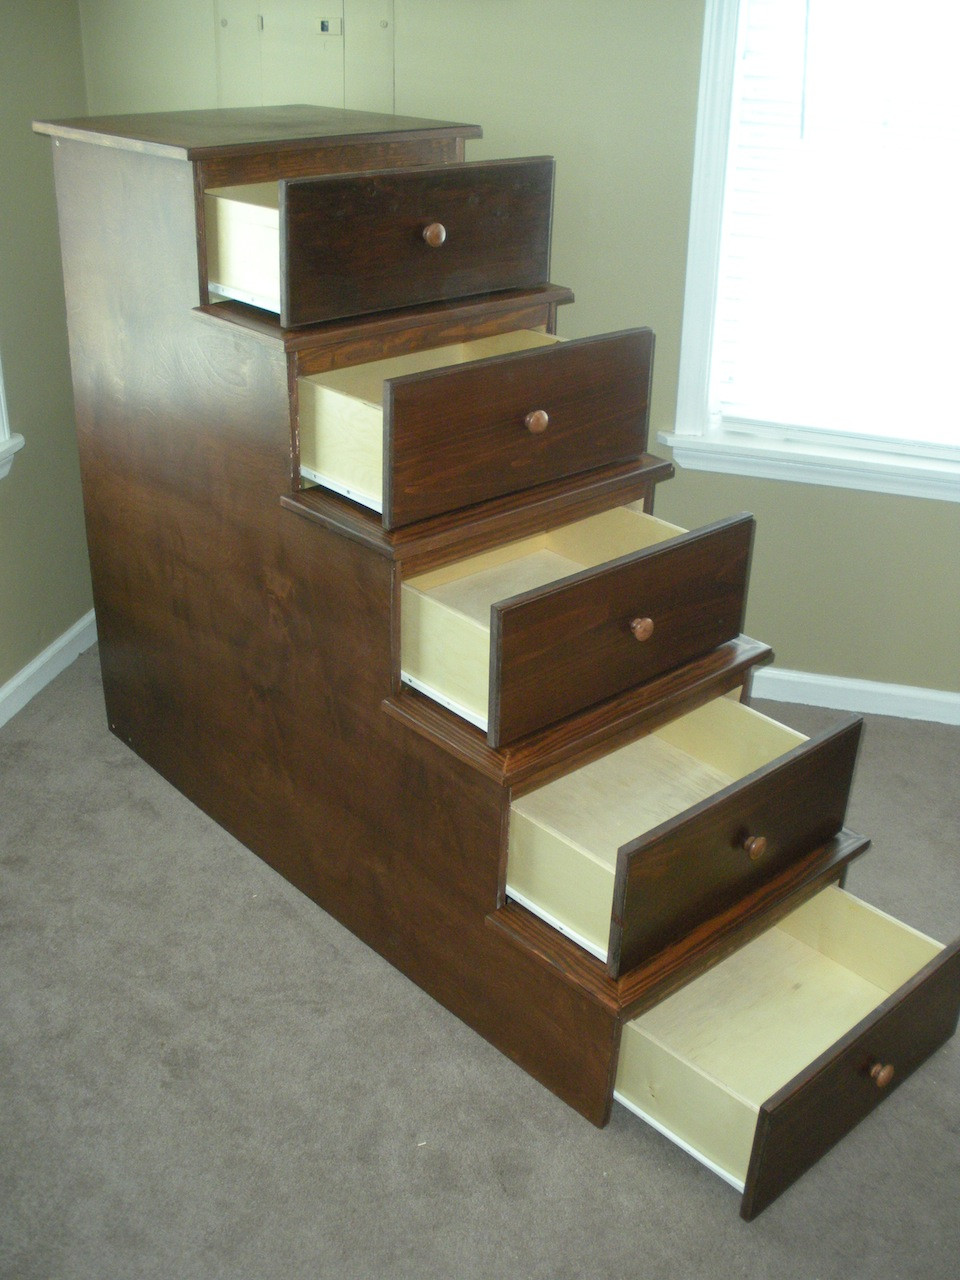 Best ideas about DIY Bunk Beds With Stairs . Save or Pin Richard s Bunk Bed Storage The Wood Whisperer Now.